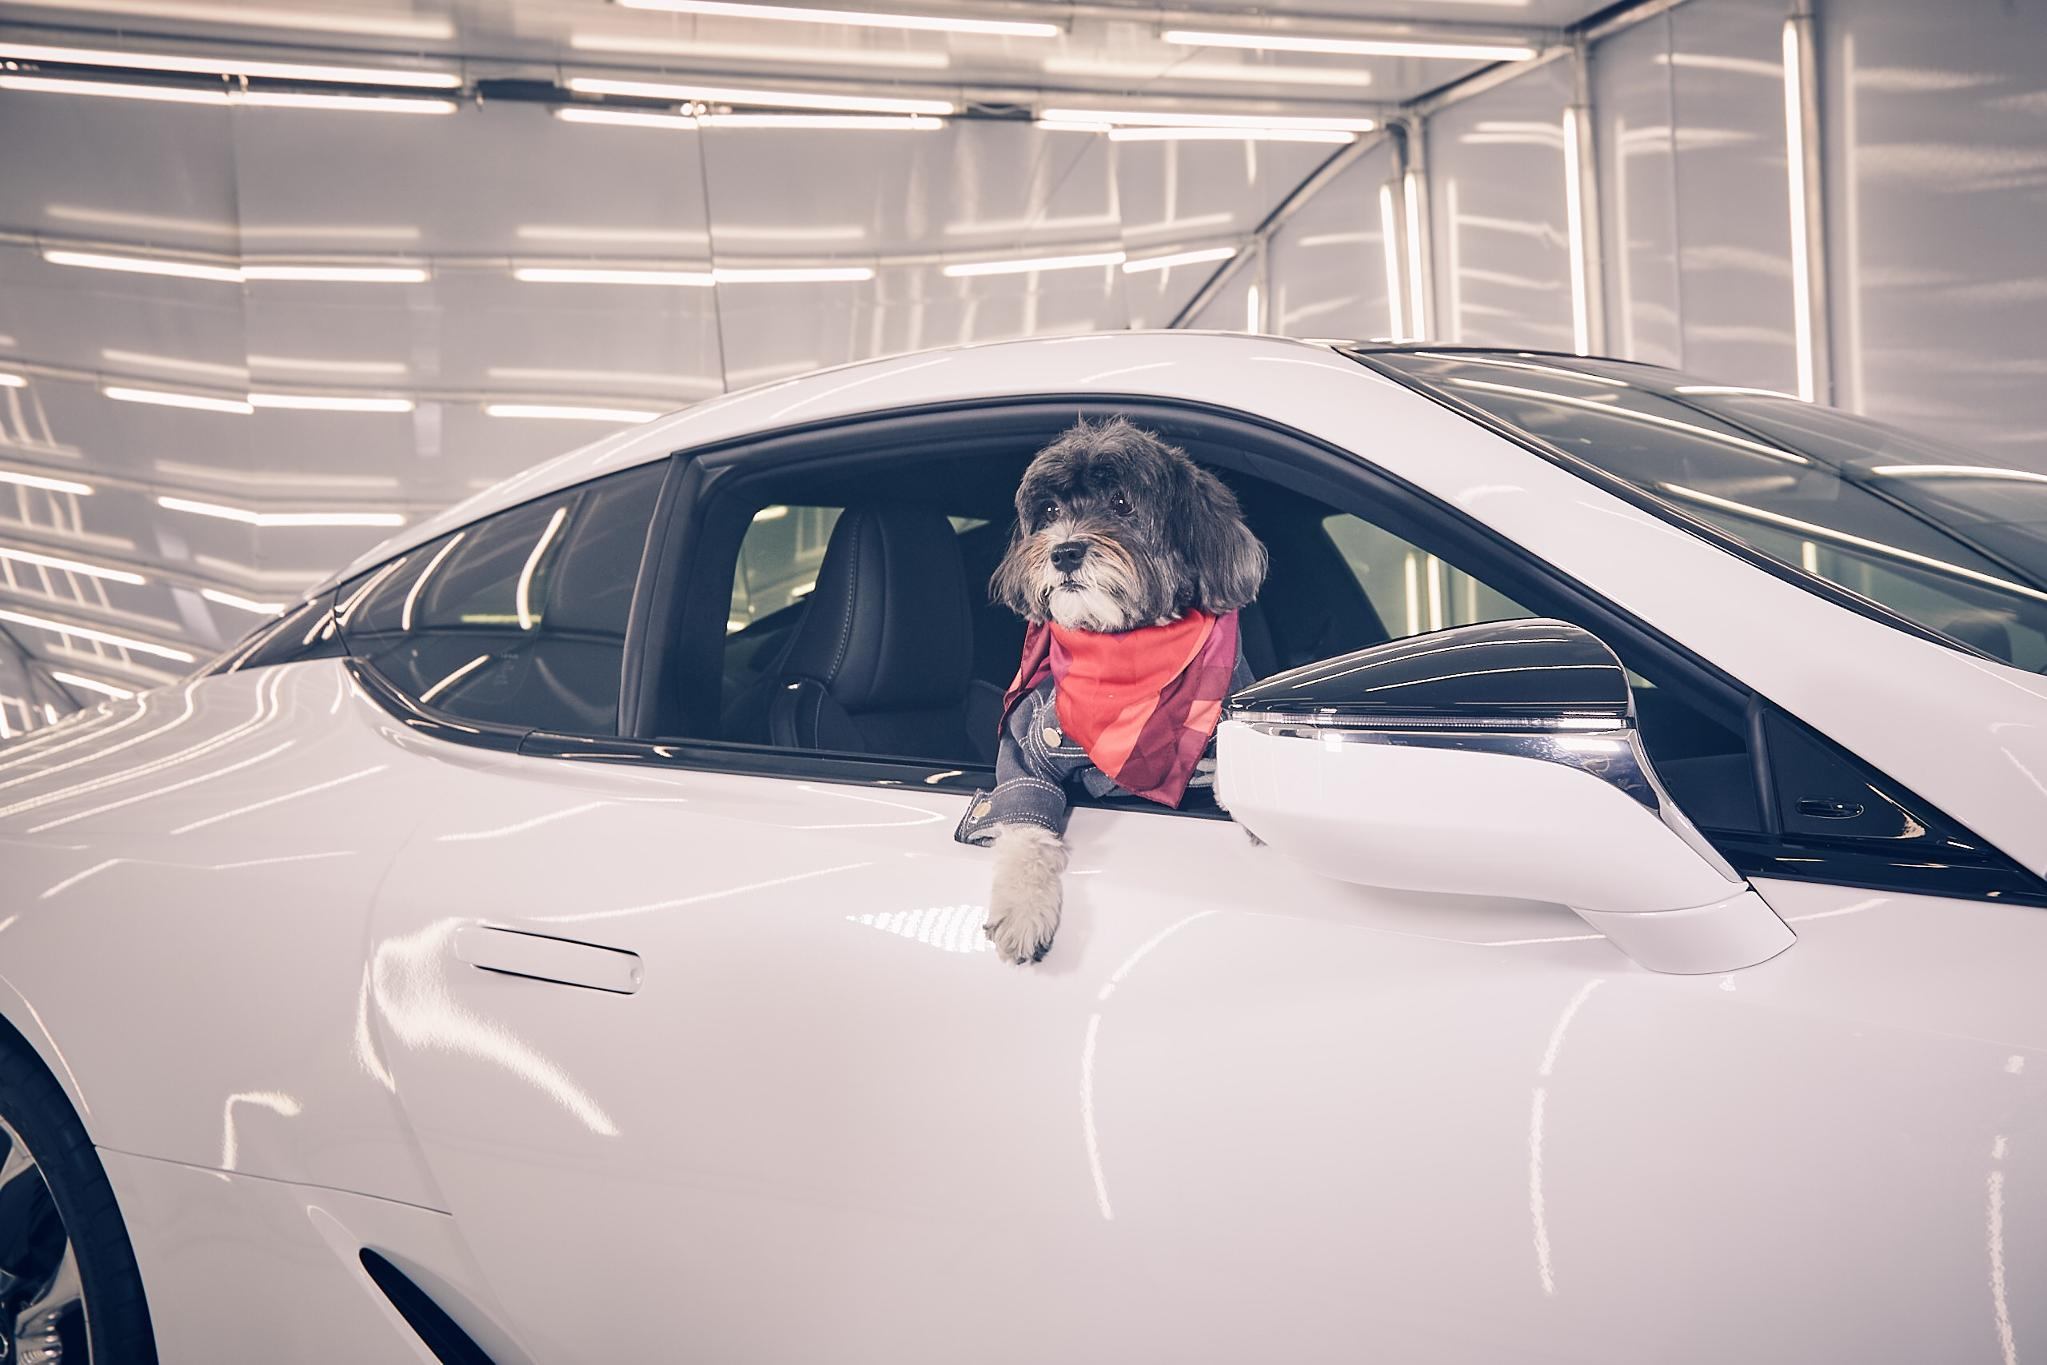 Every dog has its day. #NYFW #LexusLC #HowFashionTravels https://t.co/YdV4osTAmF